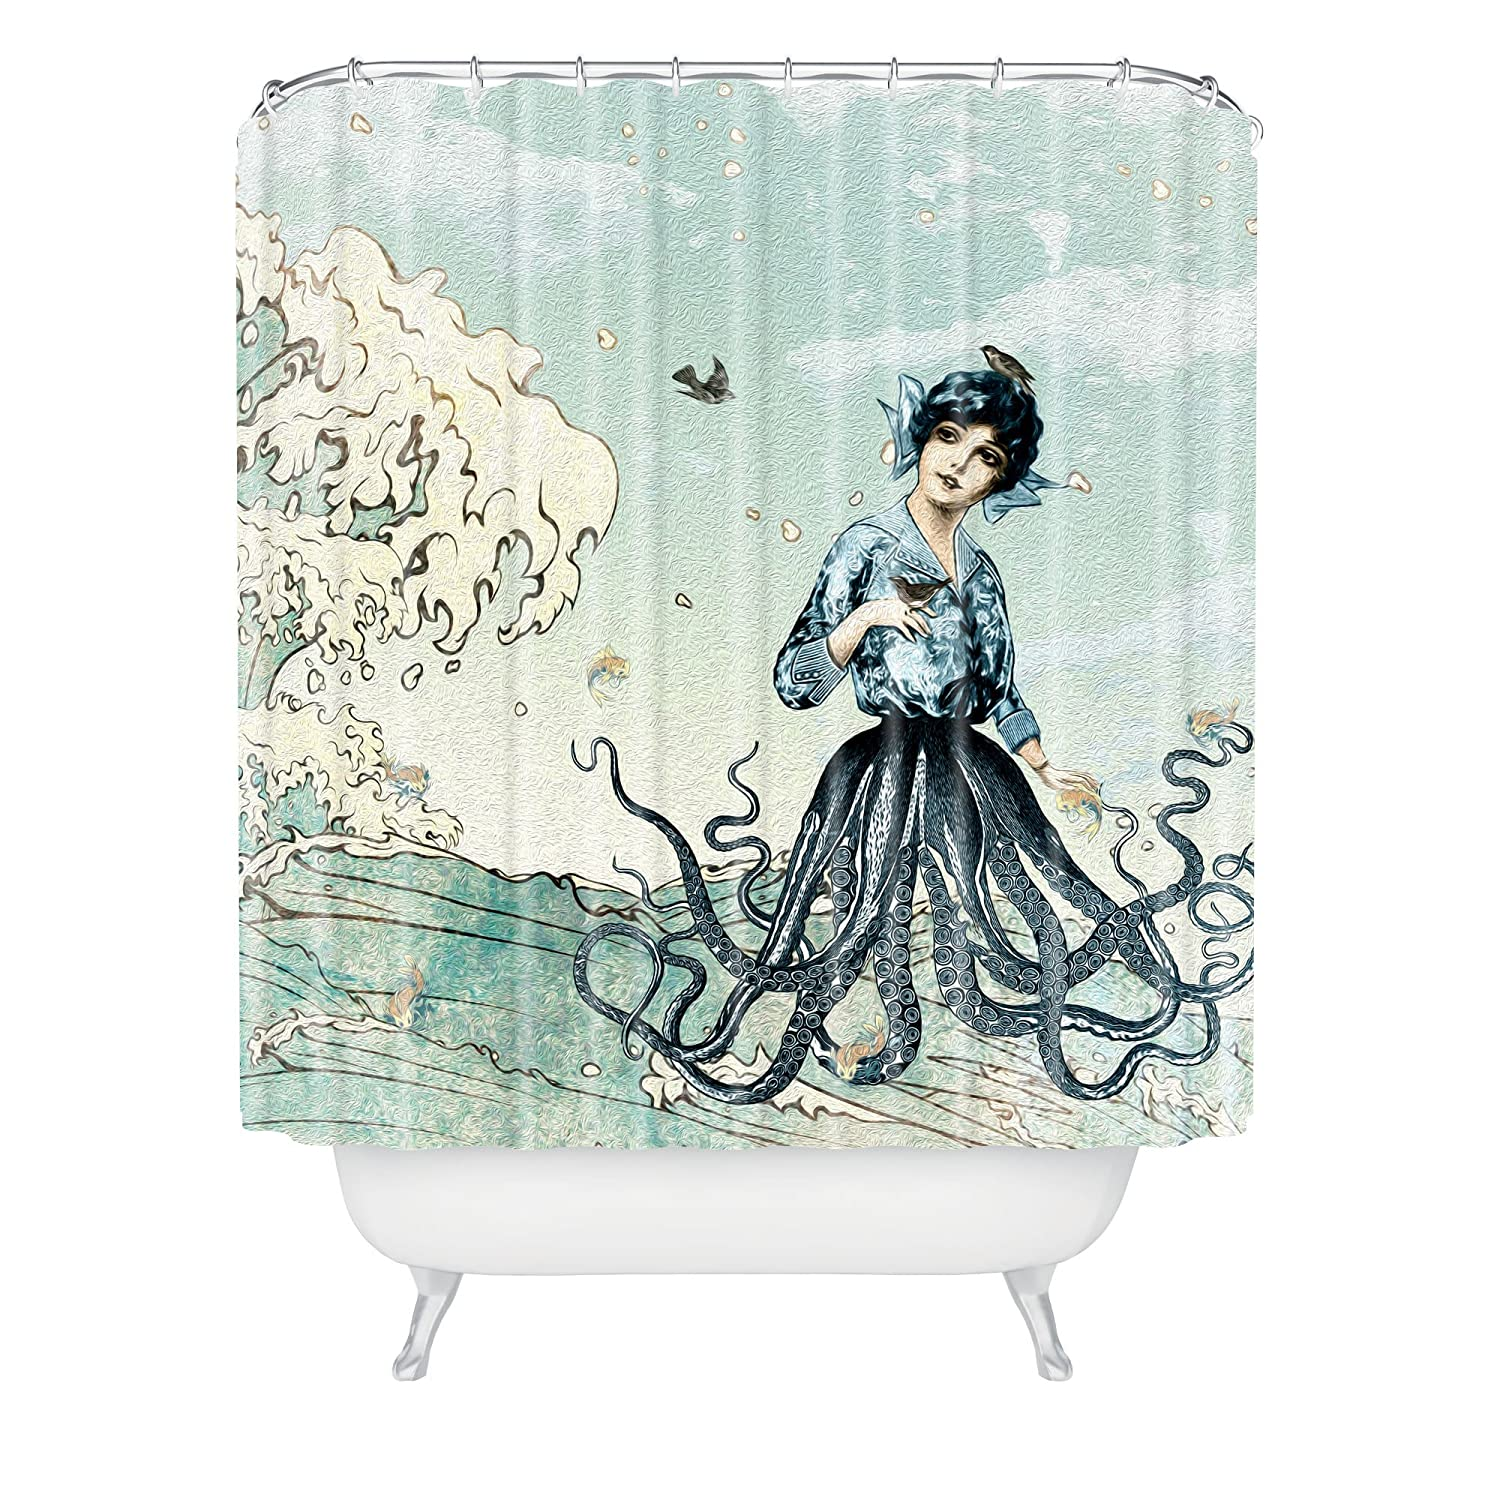 "Deny Designs Belle13 Sea Fairy Shower Curtain, 69"" x 72"""